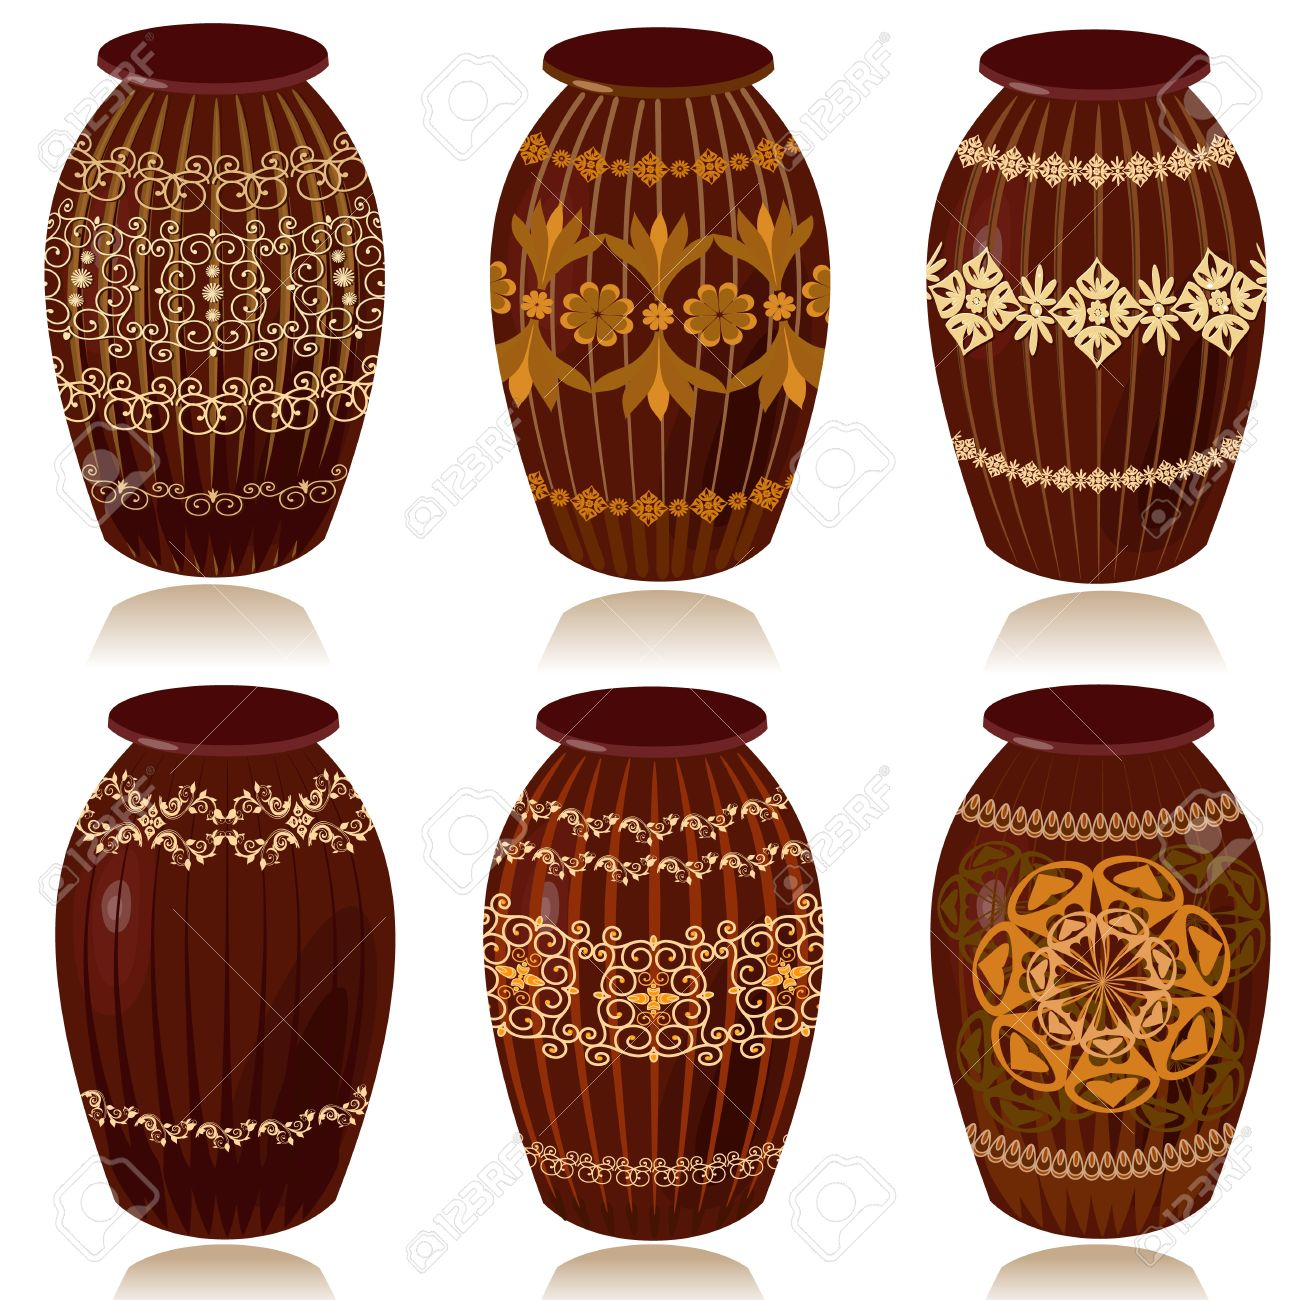 decorative ceramic vases stock vector 9180781 - Decorative Vases